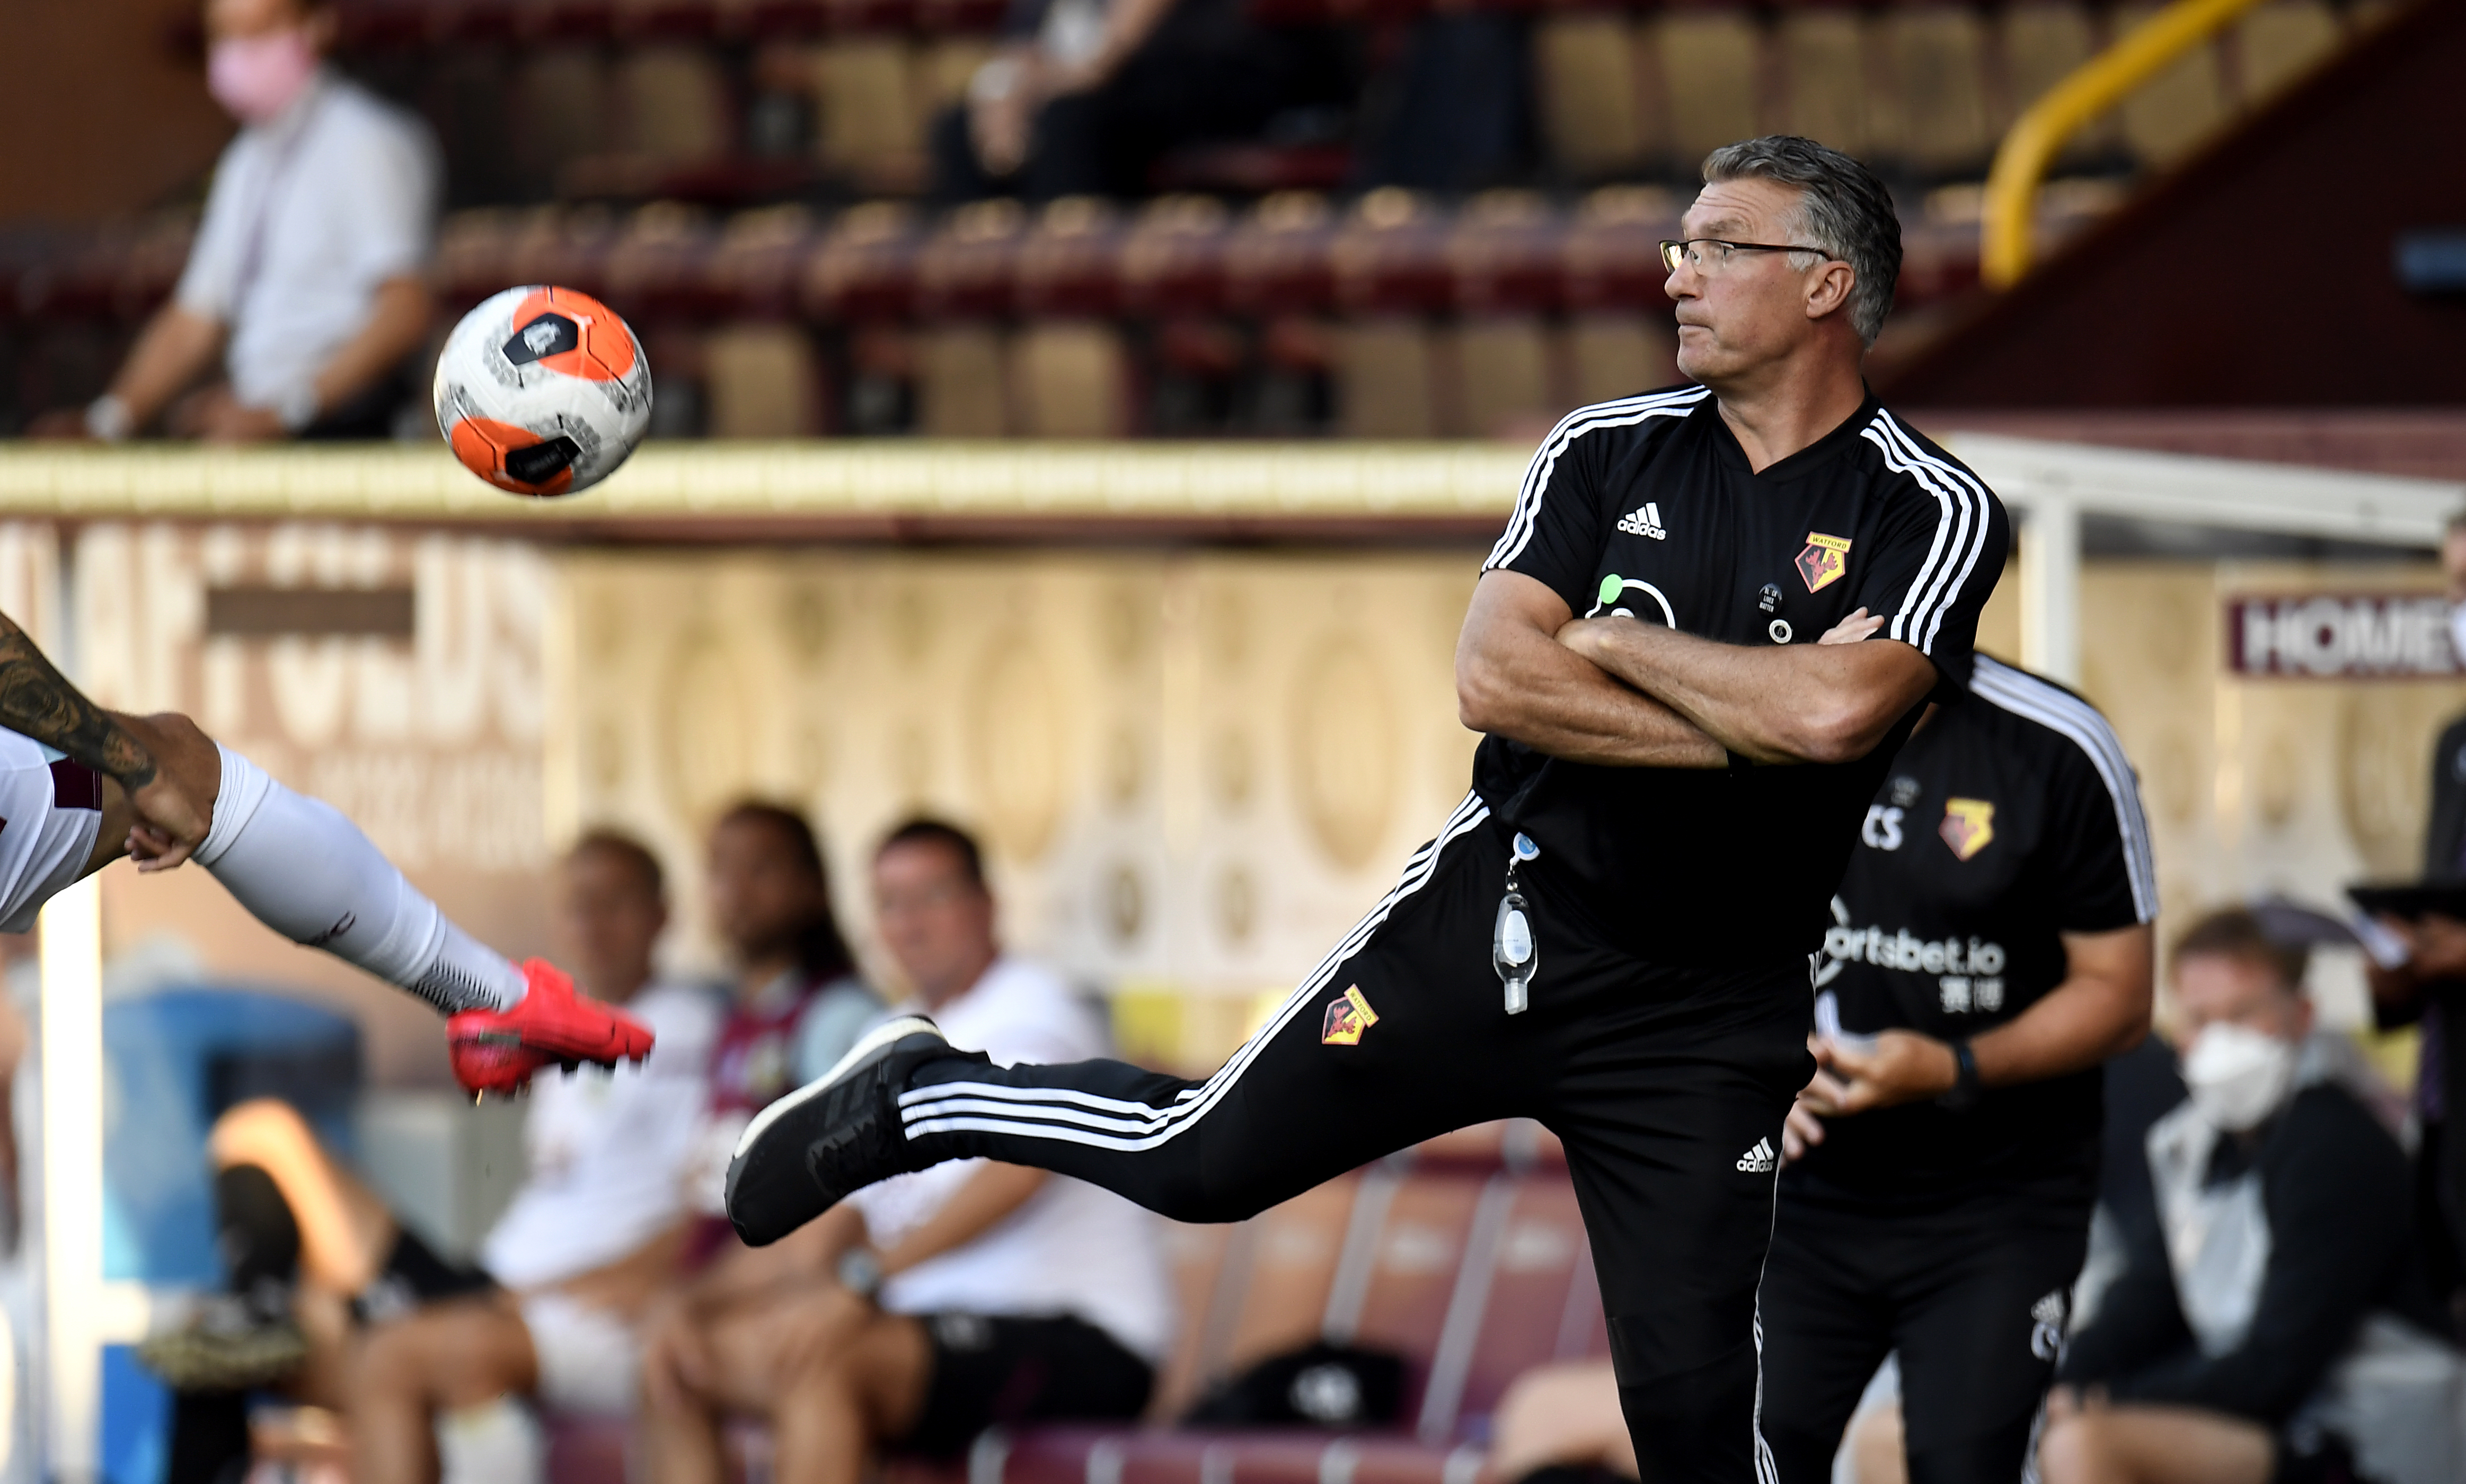 Watford manager Nigel Pearson controls the ball on the touchline during the Premier League match at Turf Moor, Burnley.